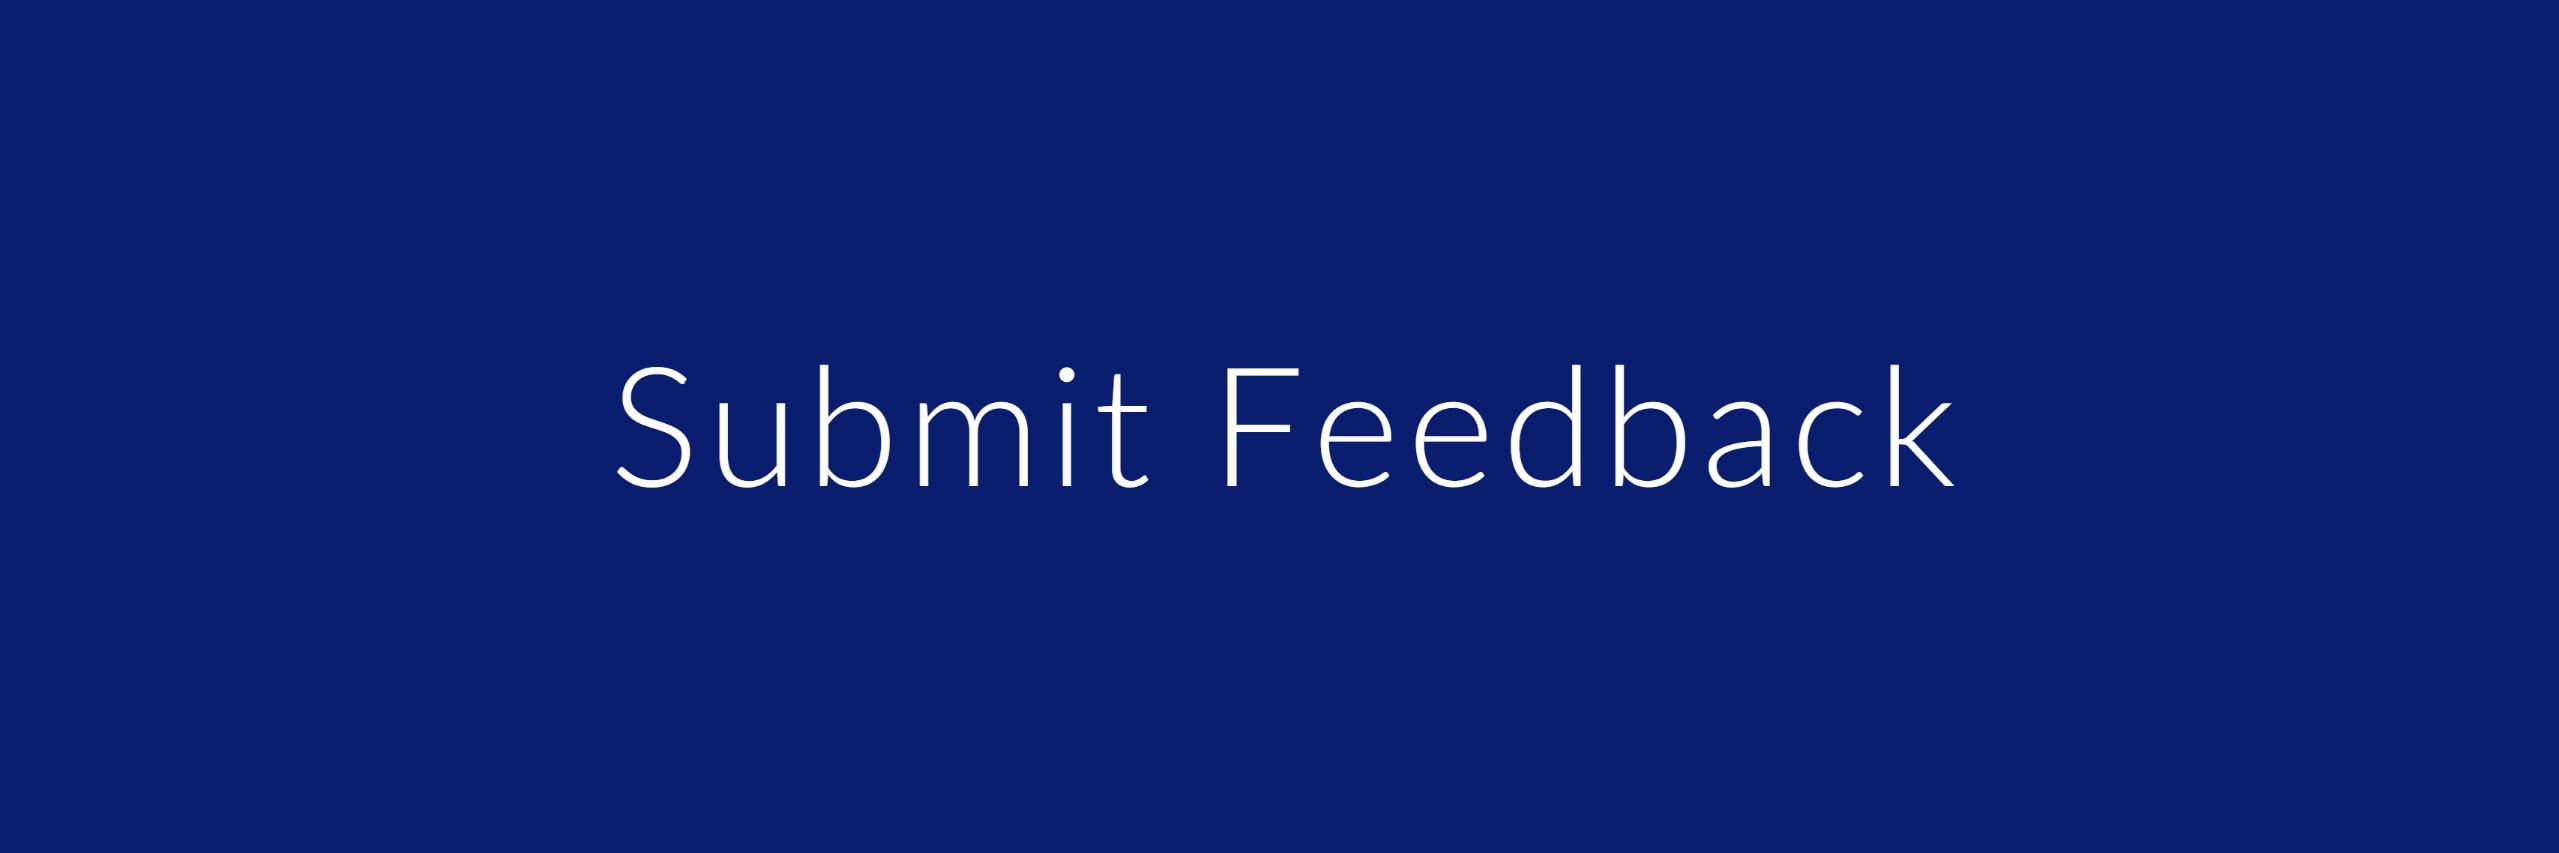 Submit Feedback button Opens in new window